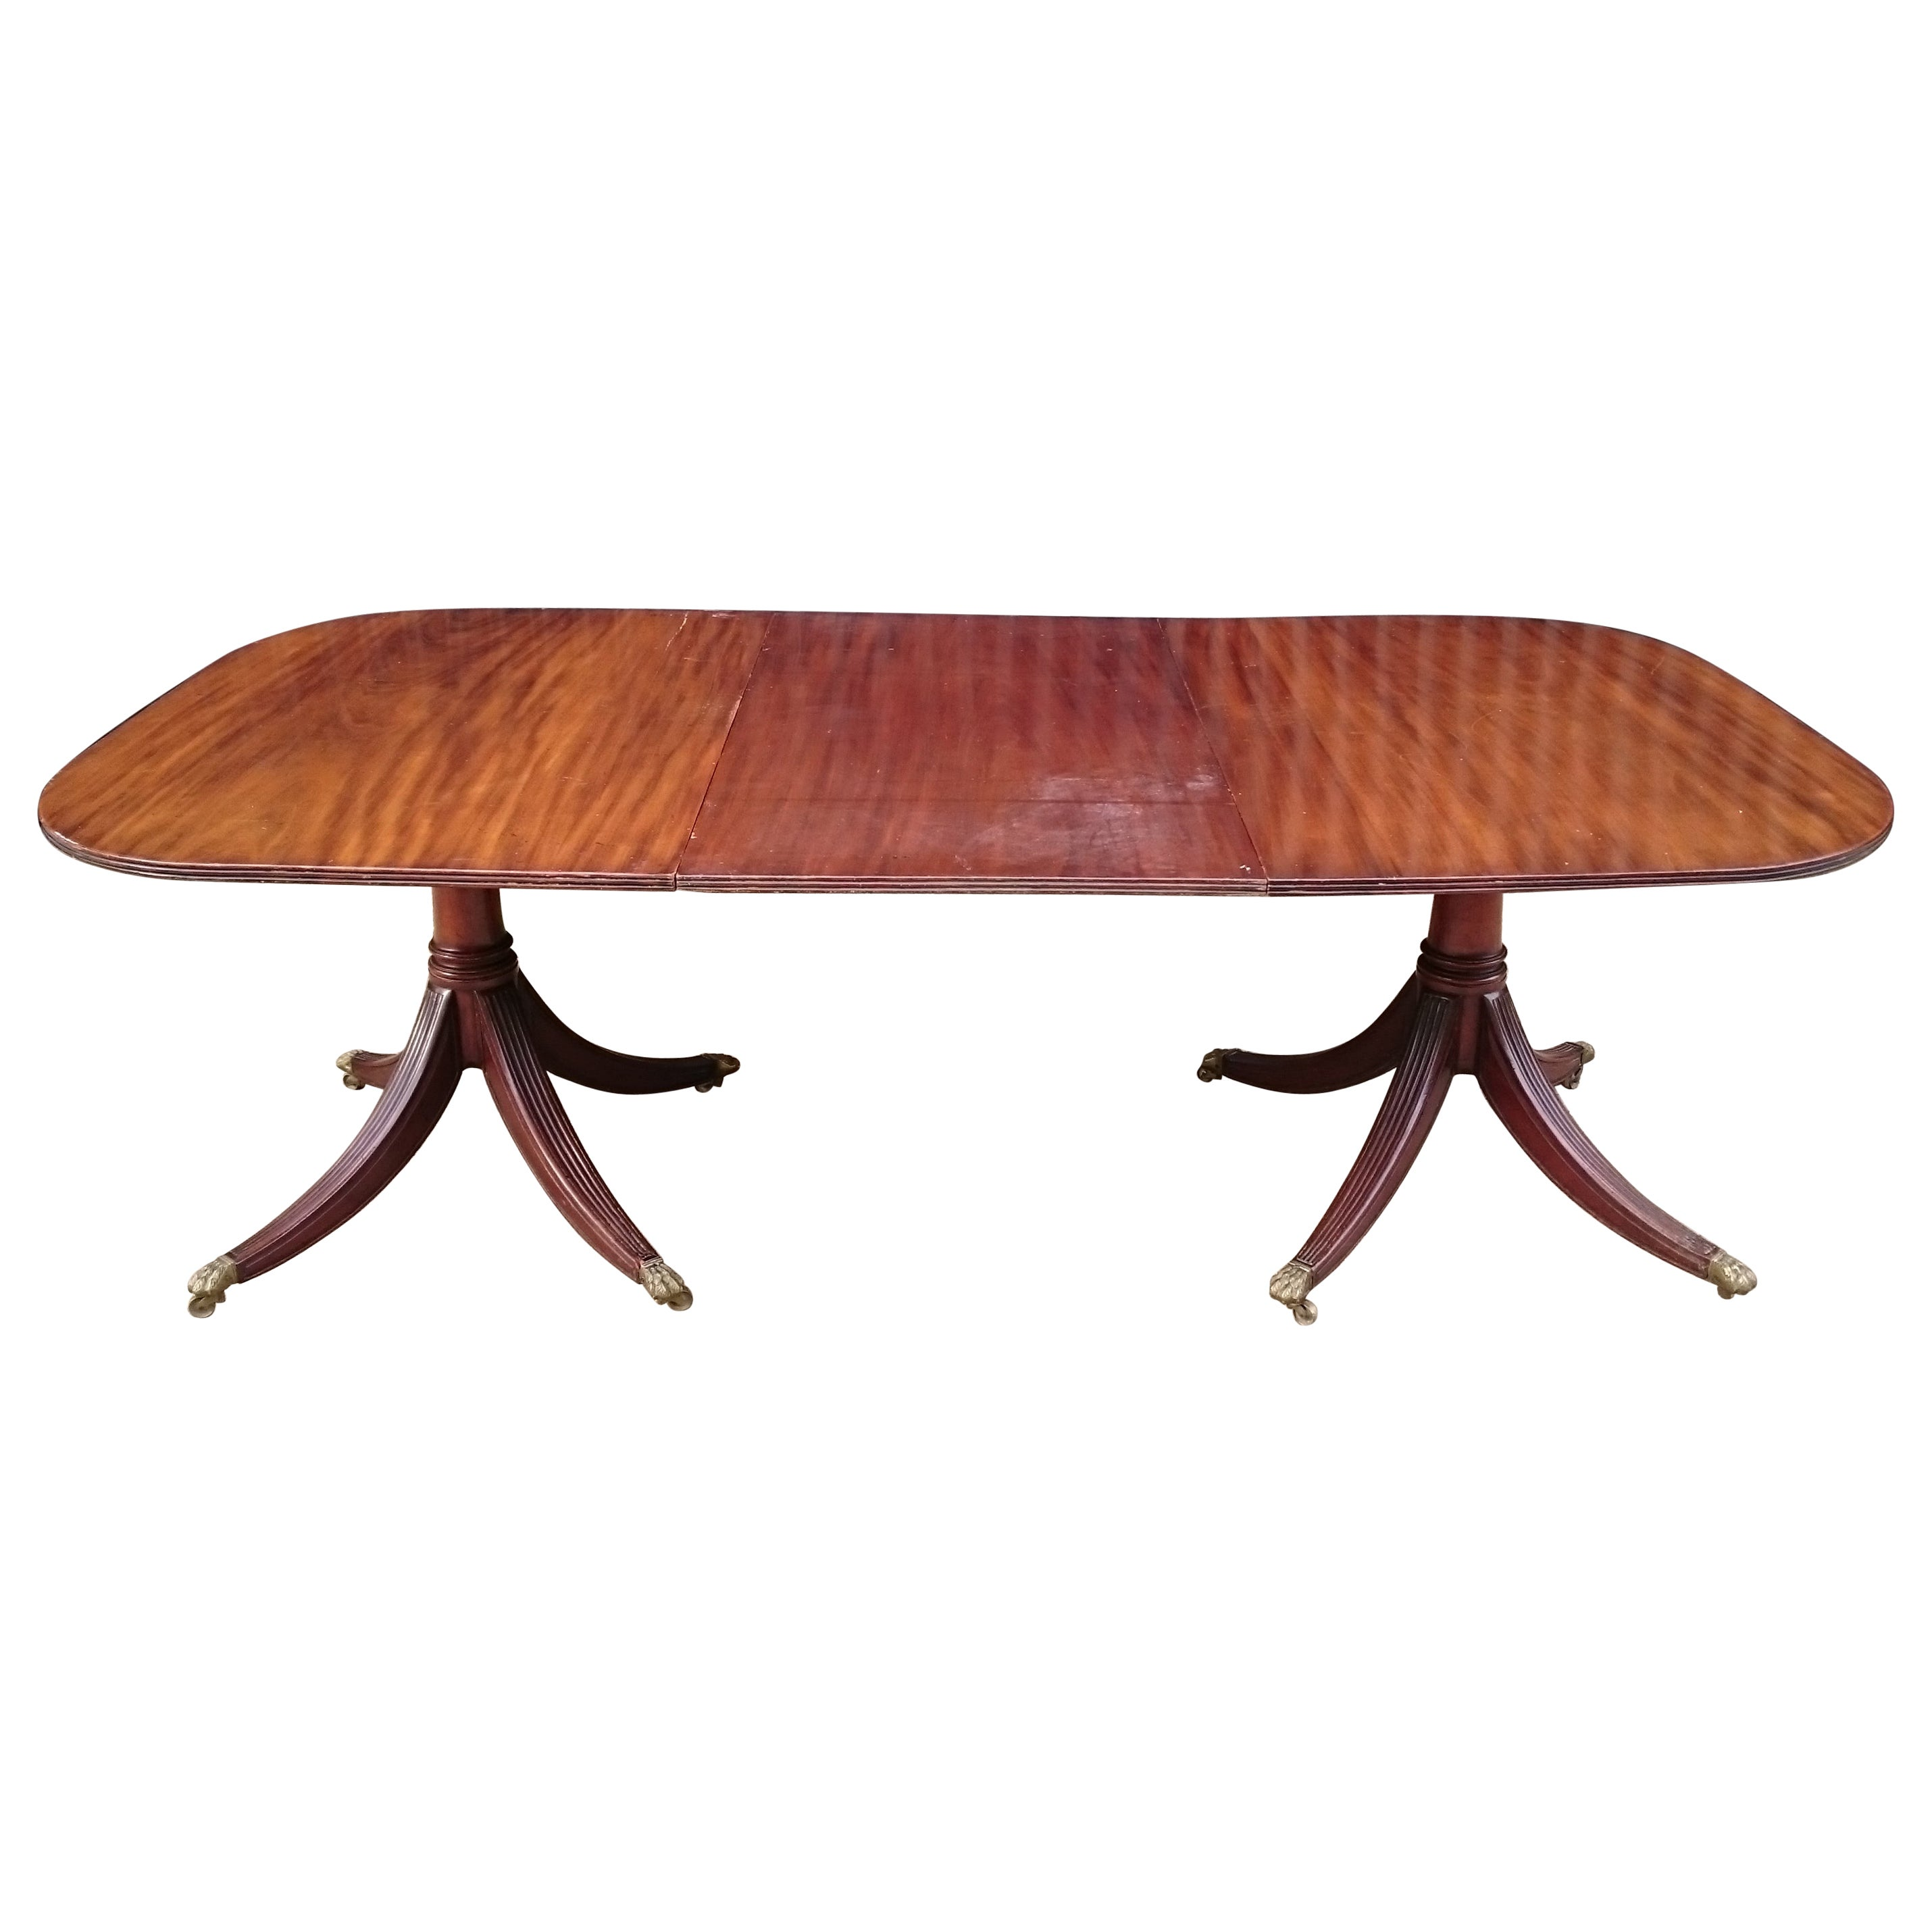 19th Century George III Period Mahogany Twin Pedestal Antique Dining Table